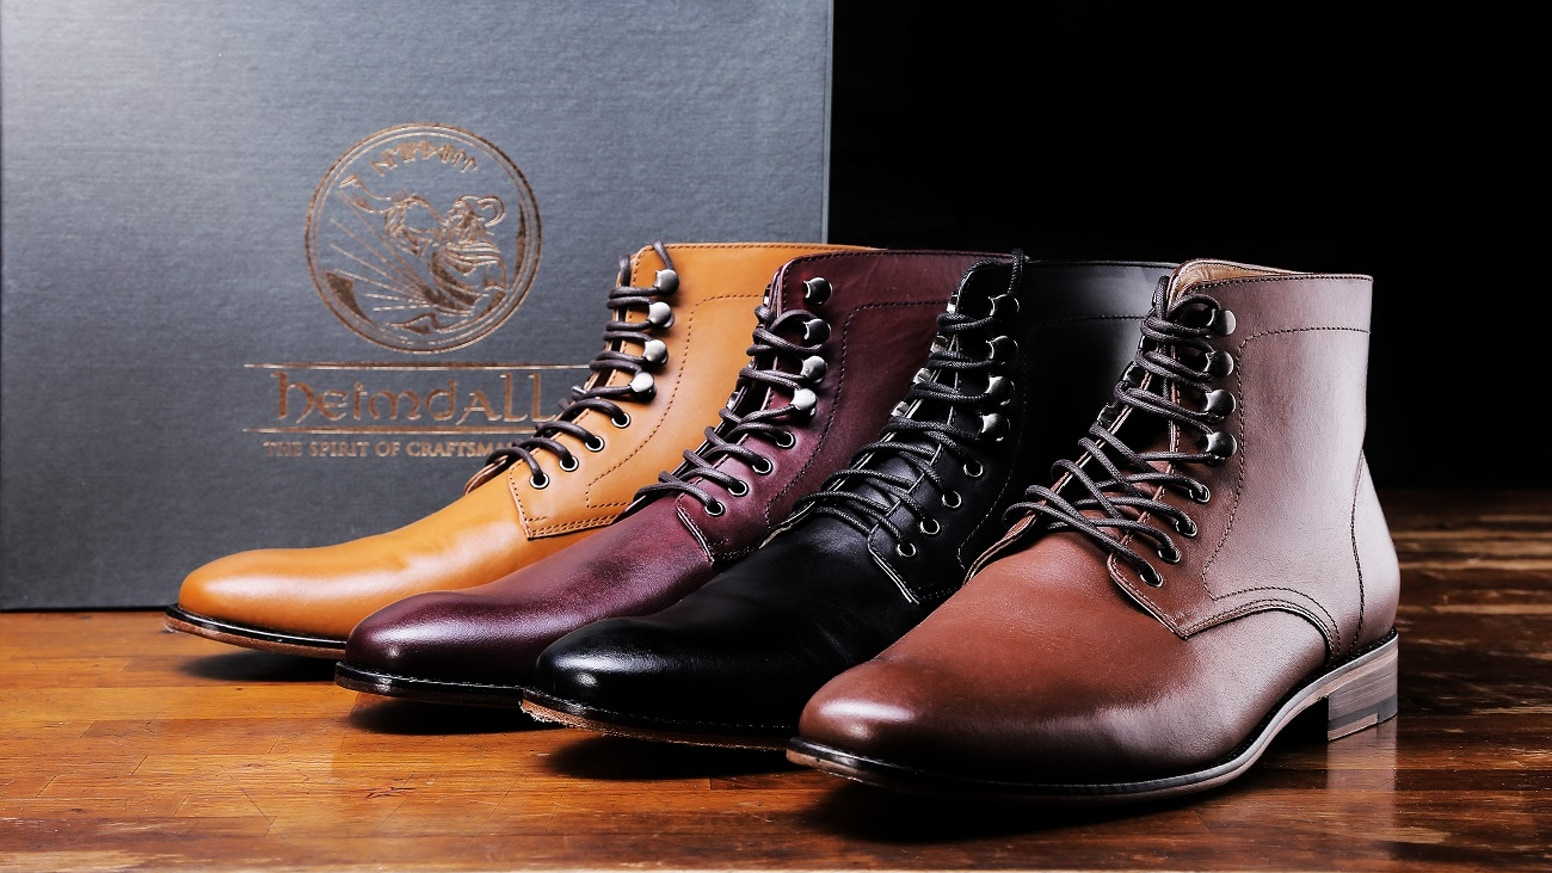 17b50d0271831 Traditional craftsmanship meets modern boots-making technique to create  high quality footwear with classic and